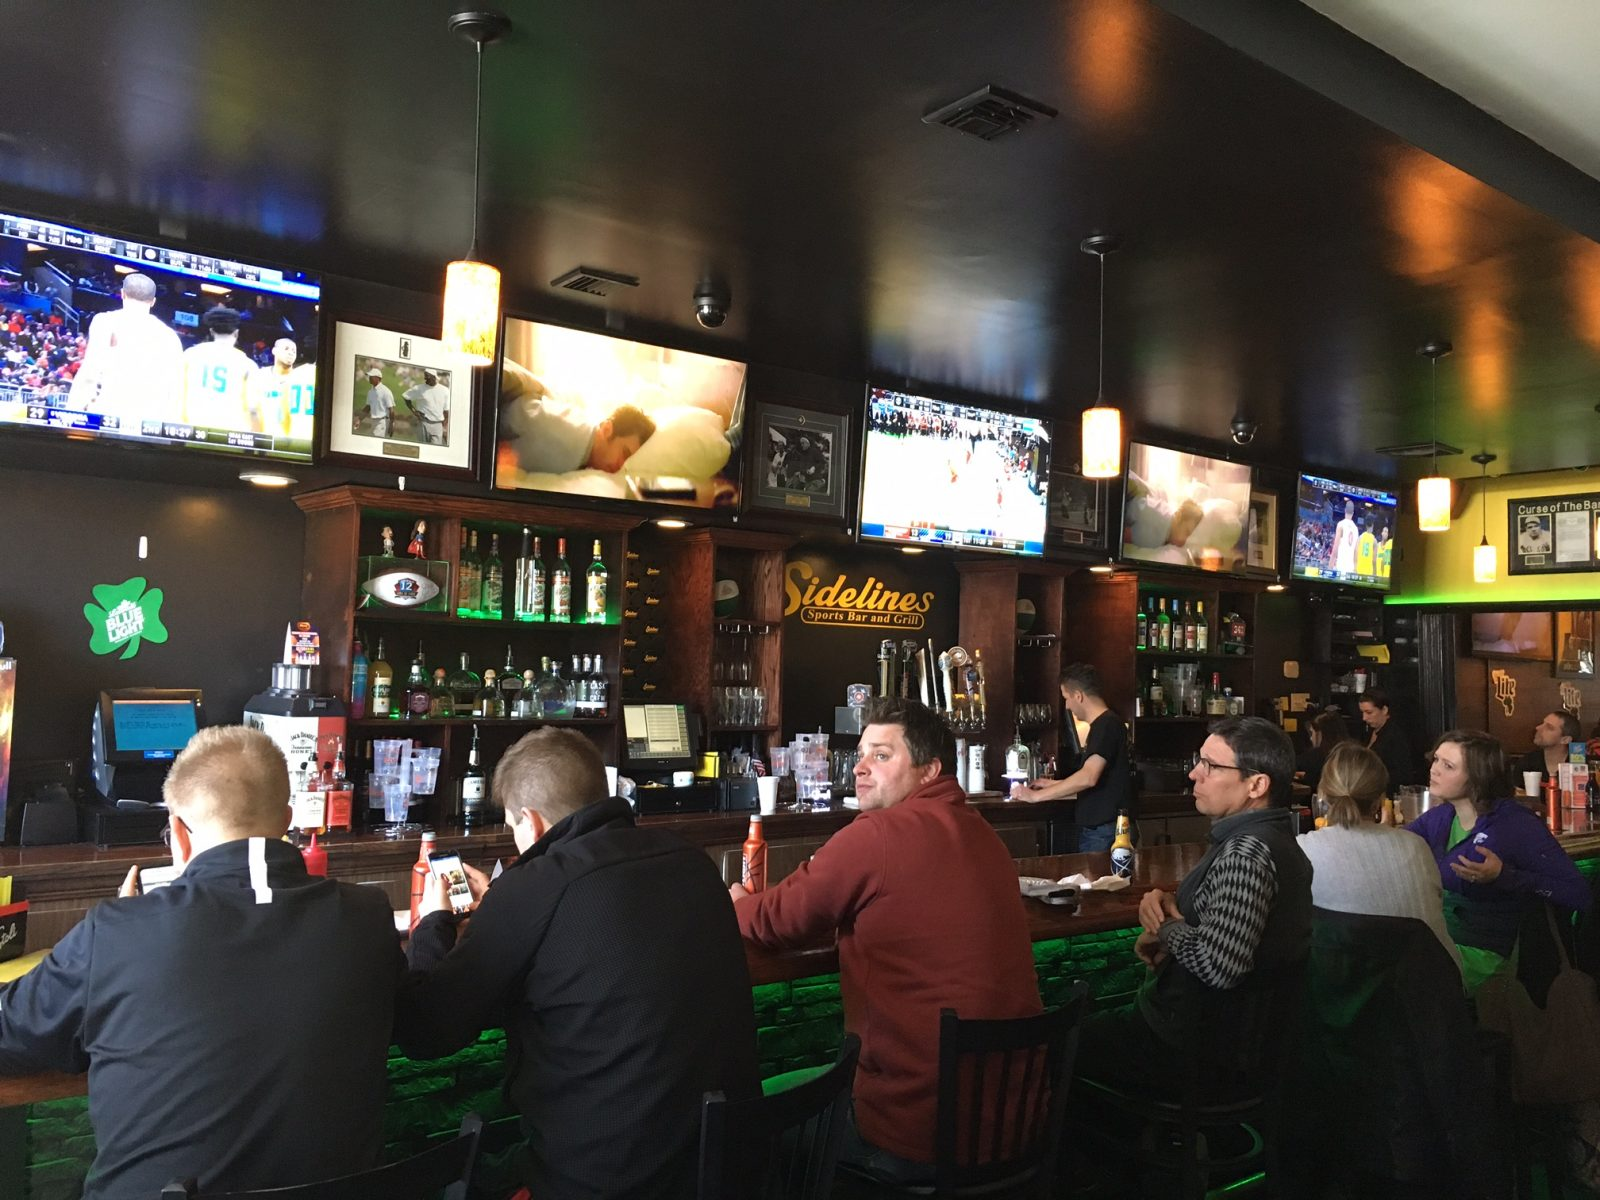 Sidelines Sports Bar & Grill is a great place for college basketball and other sports throughout the season. (Photo by Michael Farrell)